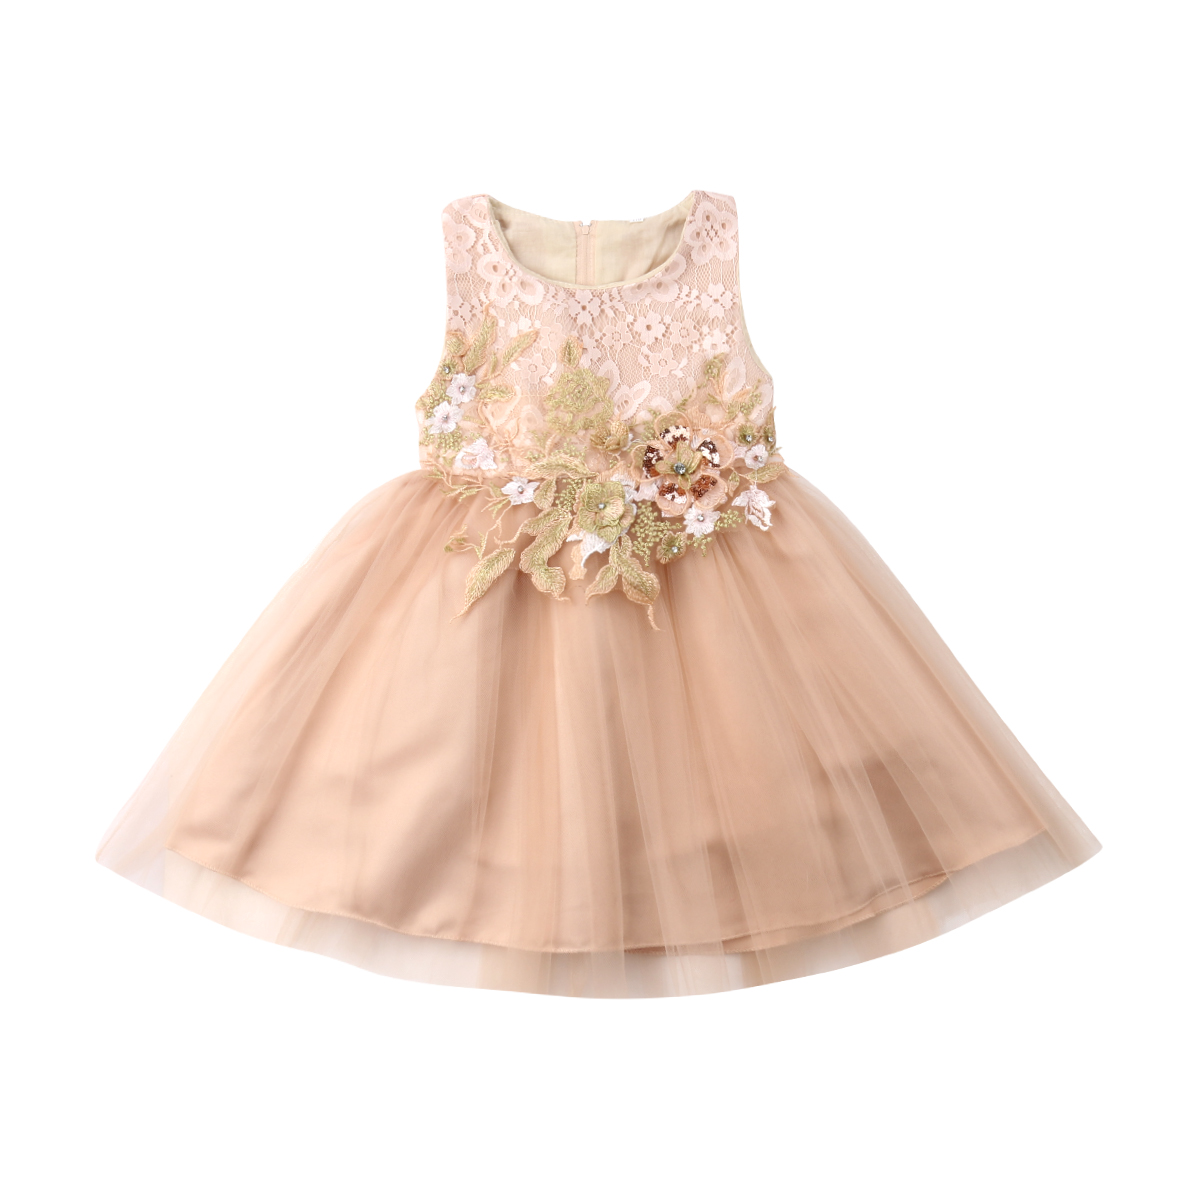 44e4e934c9 2019 Spring Flower Toddler Girls Embroidered Lace Bridesmaid Wedding  Pageant Party Prom Dresses Size 3-10